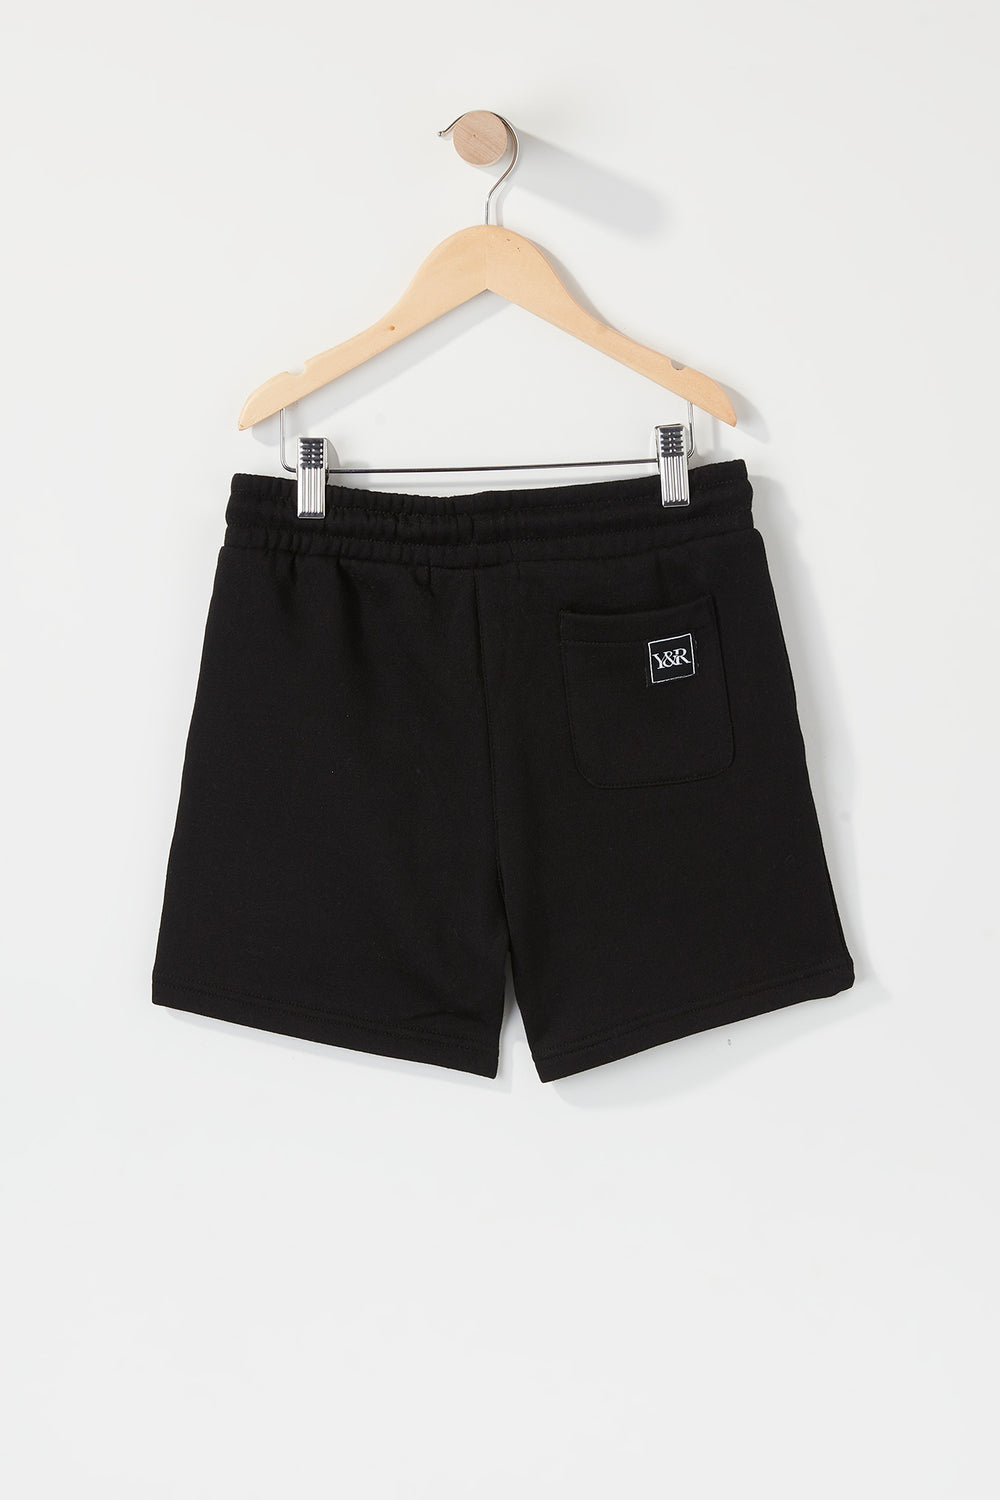 Young & Reckless Boys Neon Short Black